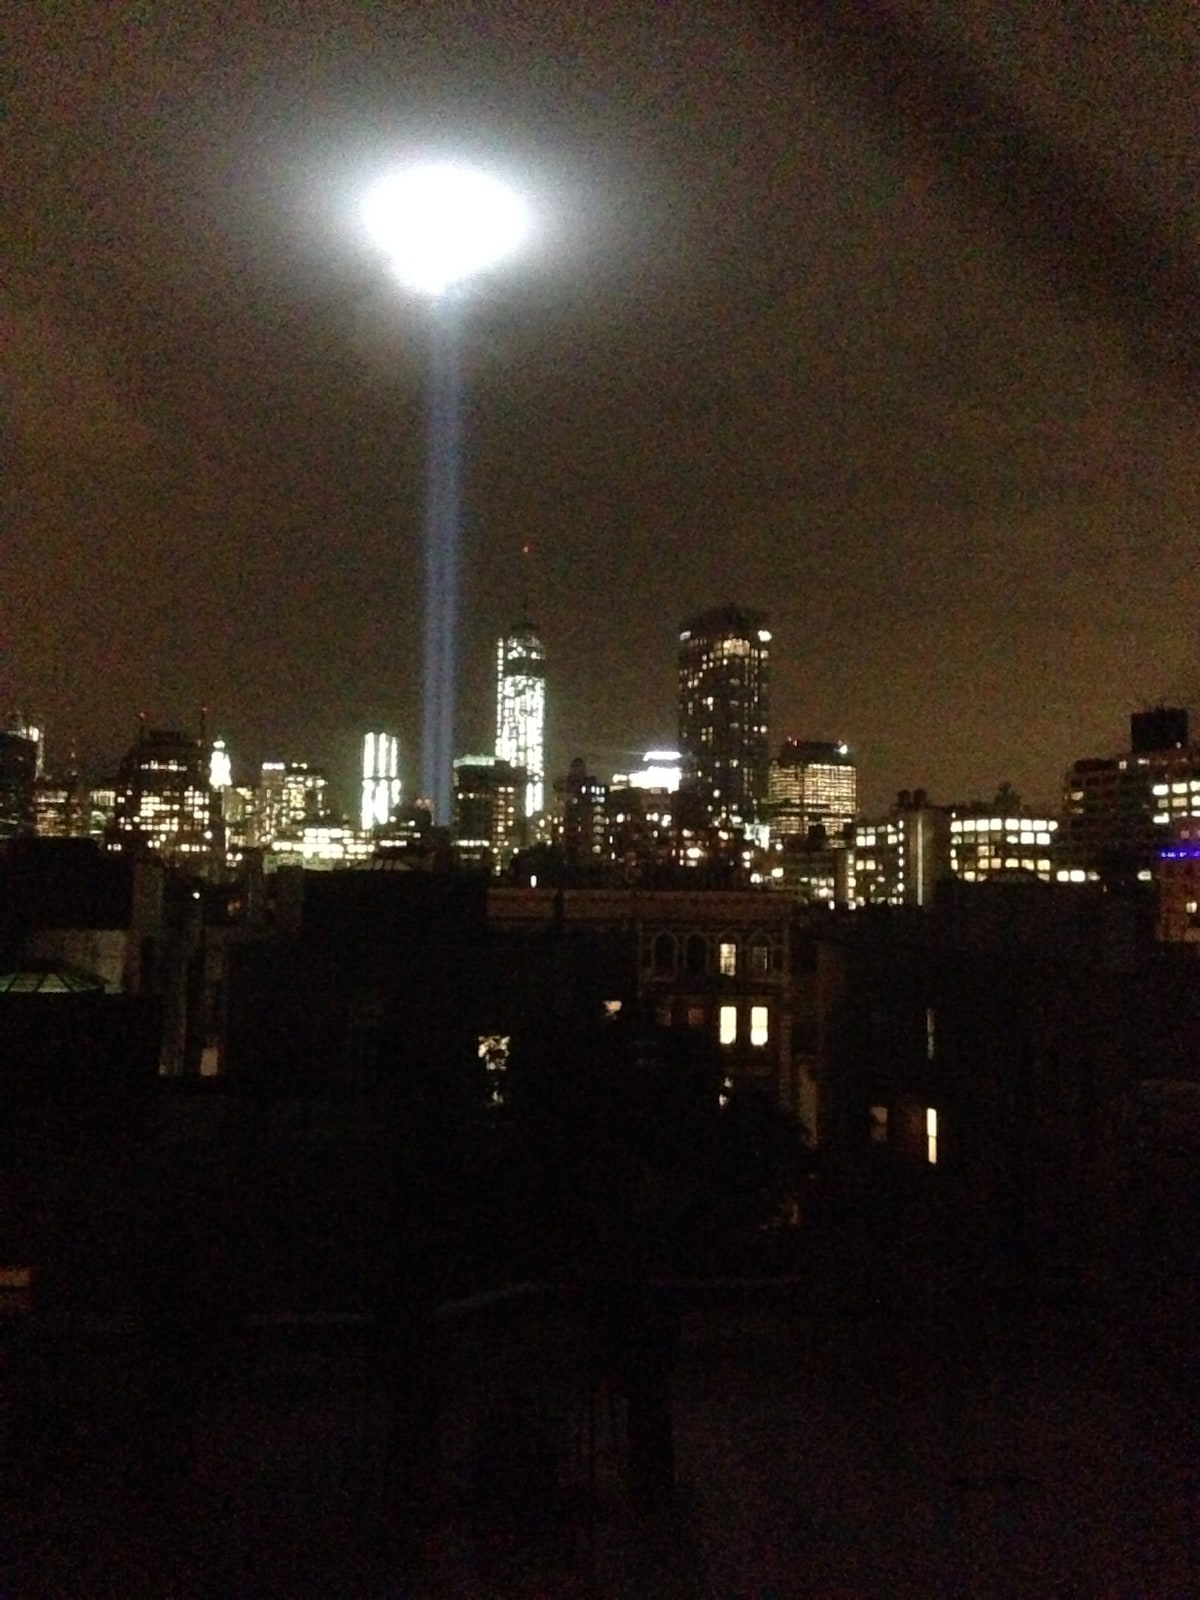 Taken from the living room couch as a remembrance to 9/11